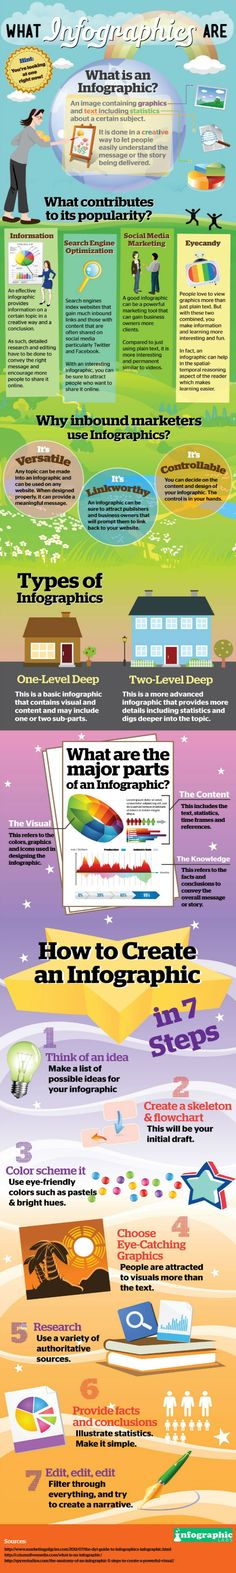 The What, Why & How of Infographic Creation [In an Infographic]